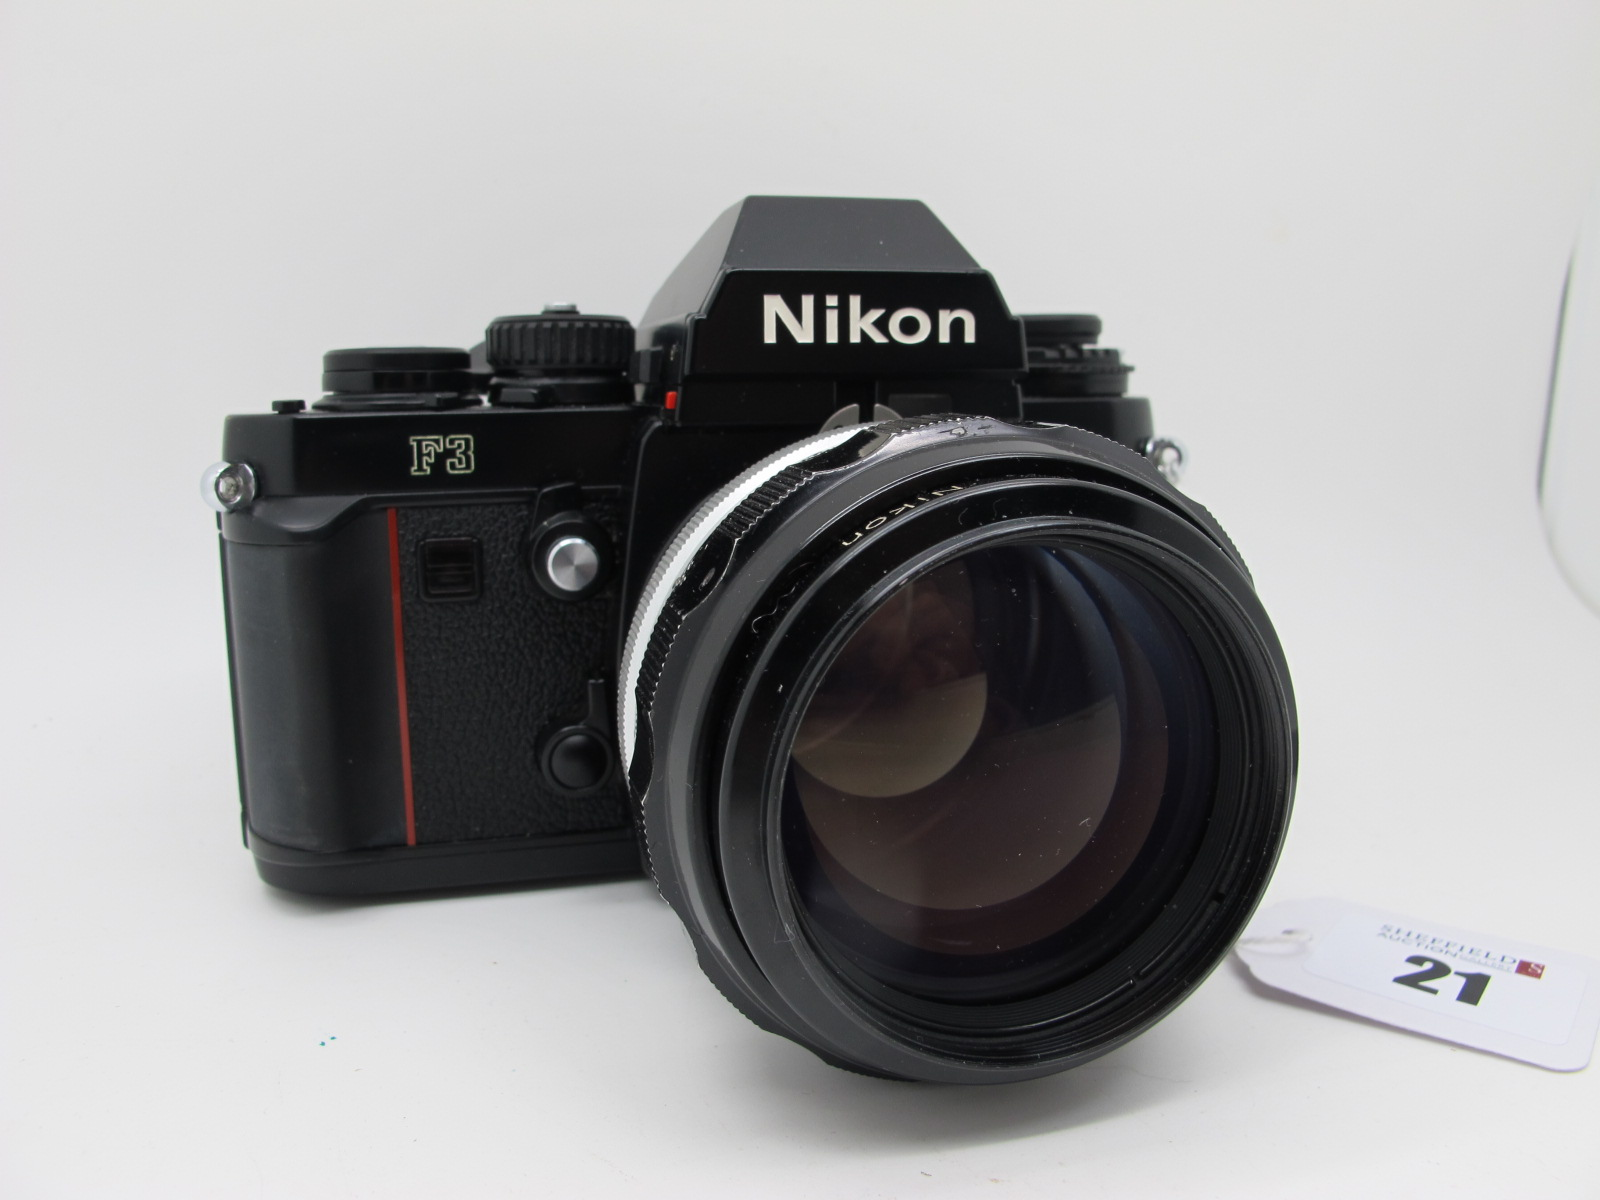 Nikon F3, with Nikkor-H Auto 1-18 f=85mm lens. - Image 3 of 9